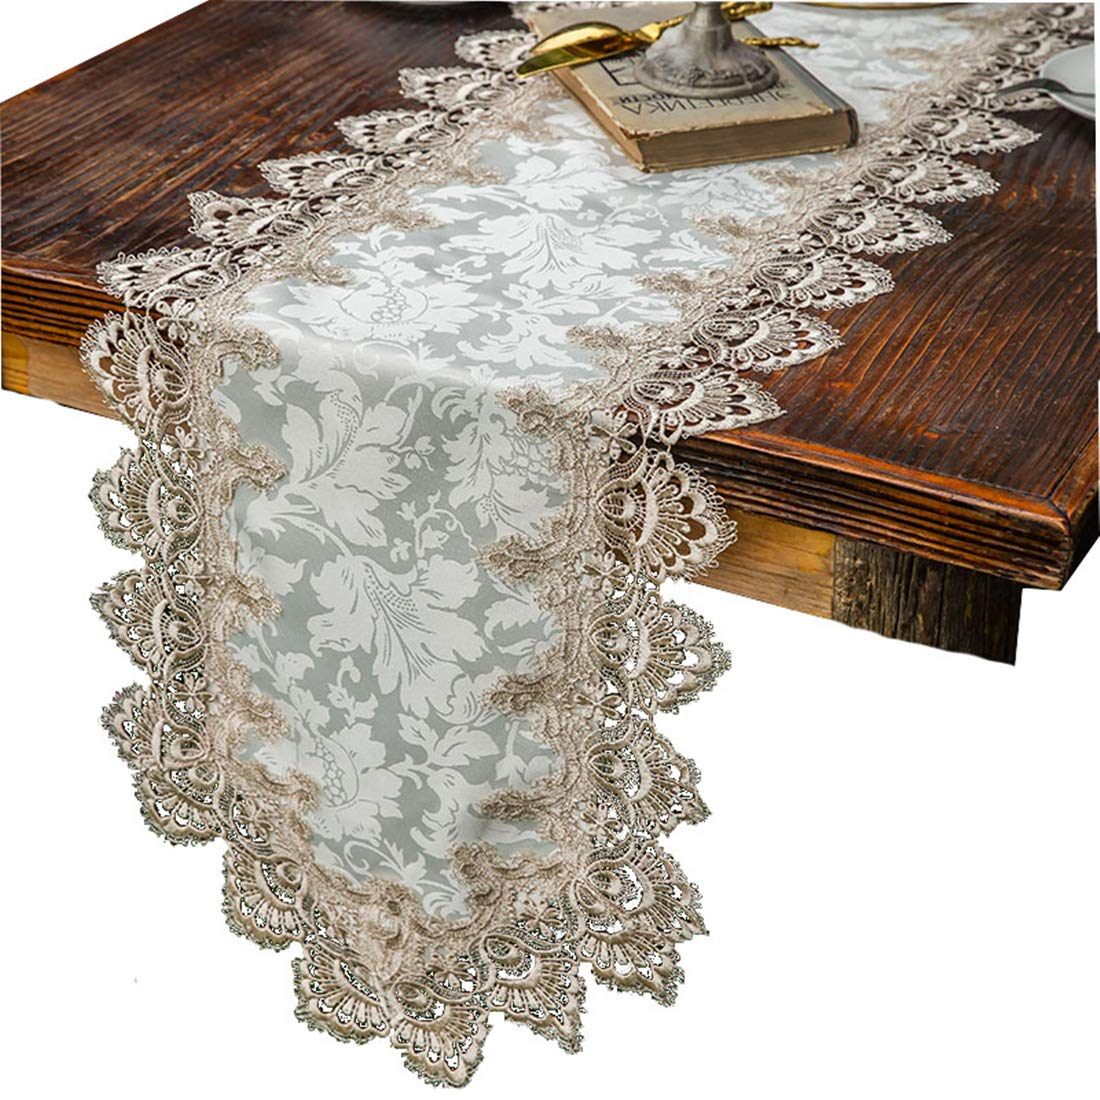 (15.7 x 35.4 inches(40 x 90cm)) - TaiXiuHome Modern Lace Floral Embroidered Indoor Outdoor Table Runner Table flags for Country Rustic Party Wedding Home Decoration approx 41cm x 90cm 15.7 x 35.4 inches(40 x 90cm)  B0757KNJ6C